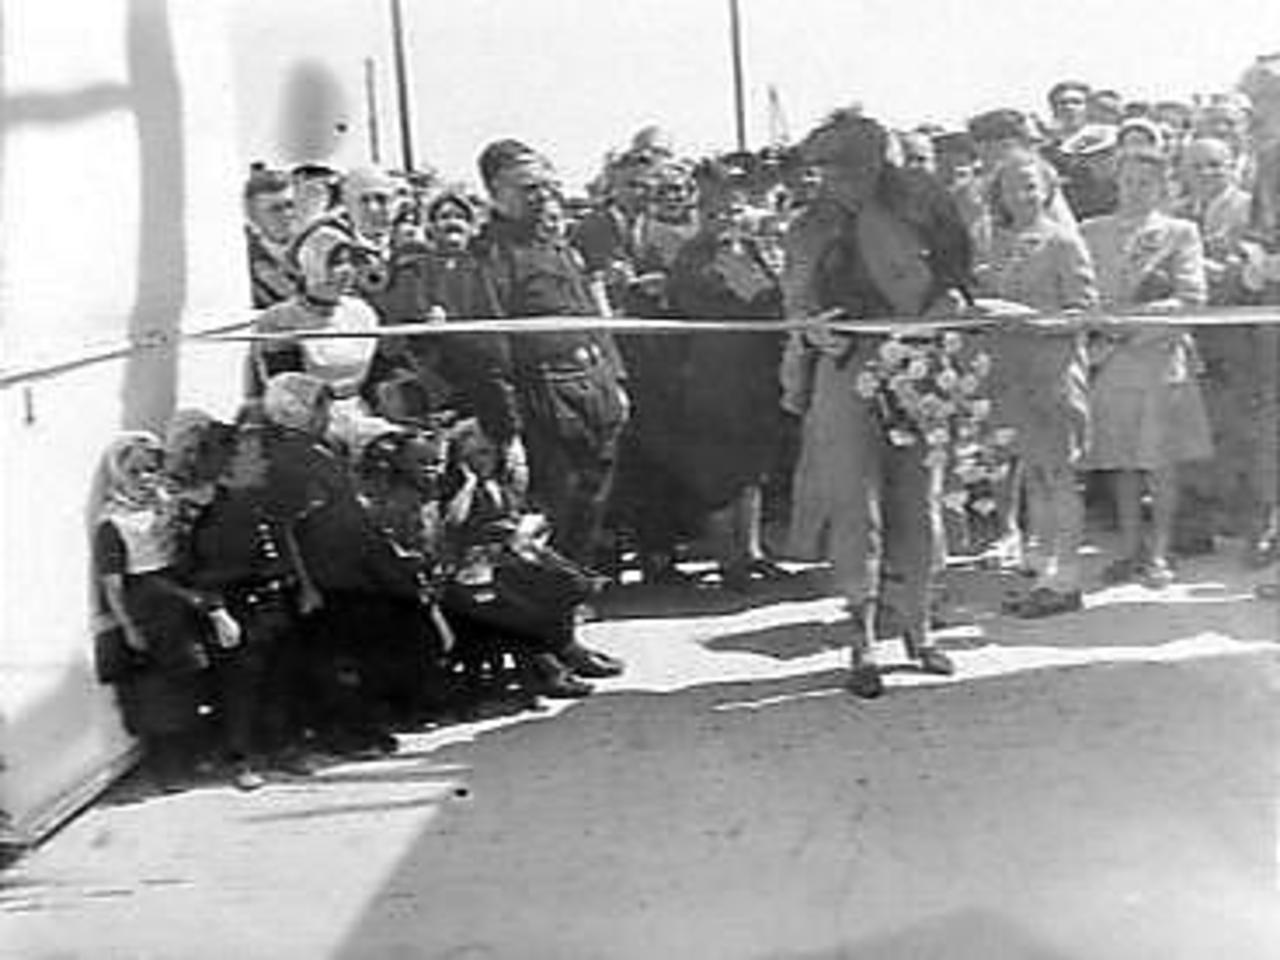 The connecting road to Urk was opened on Wednesday 19 May 1948. The festive opening was organised by Urk, which is why the wife of the Queen's Commissioner of North-Holland was allowed to do the festive opening.